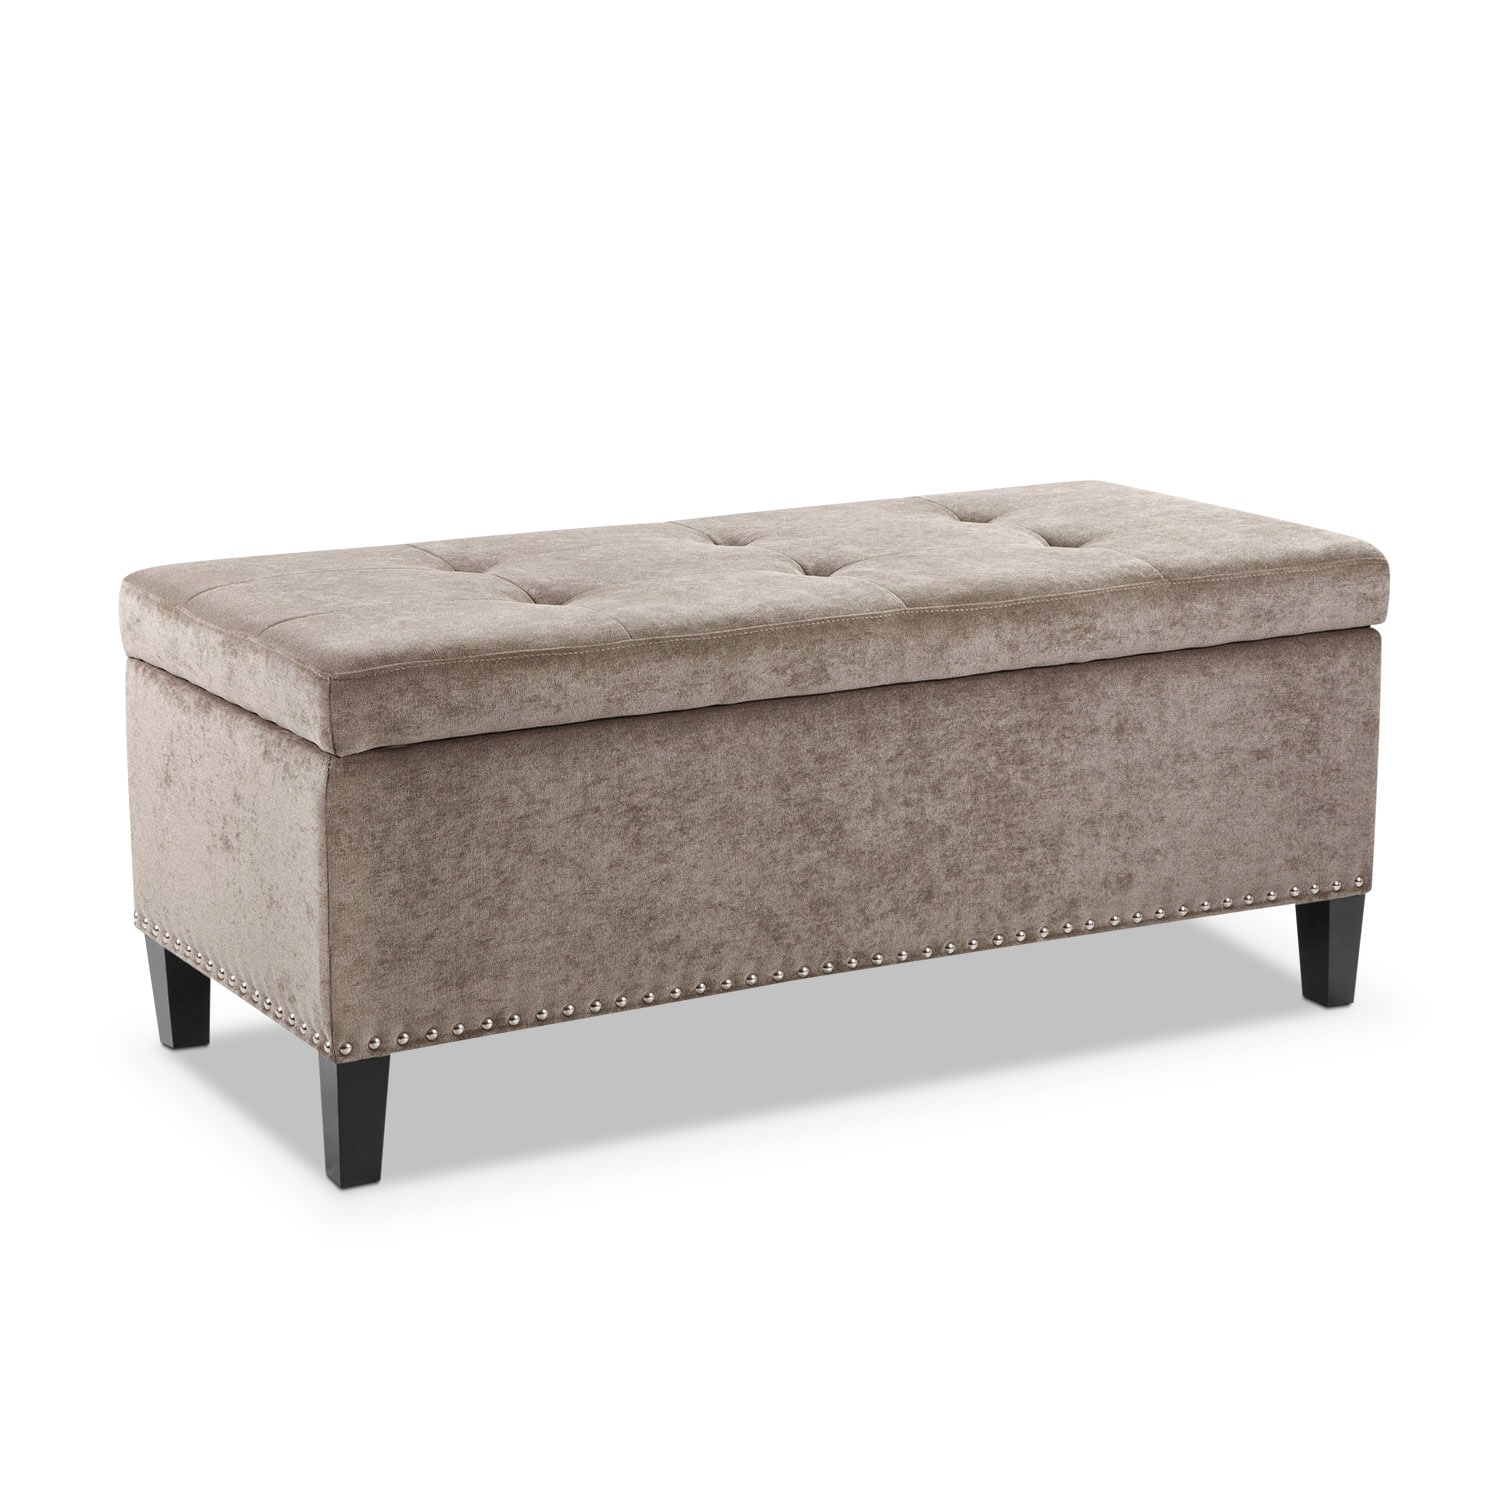 Harper storage bench gray value city furniture Gray storage bench